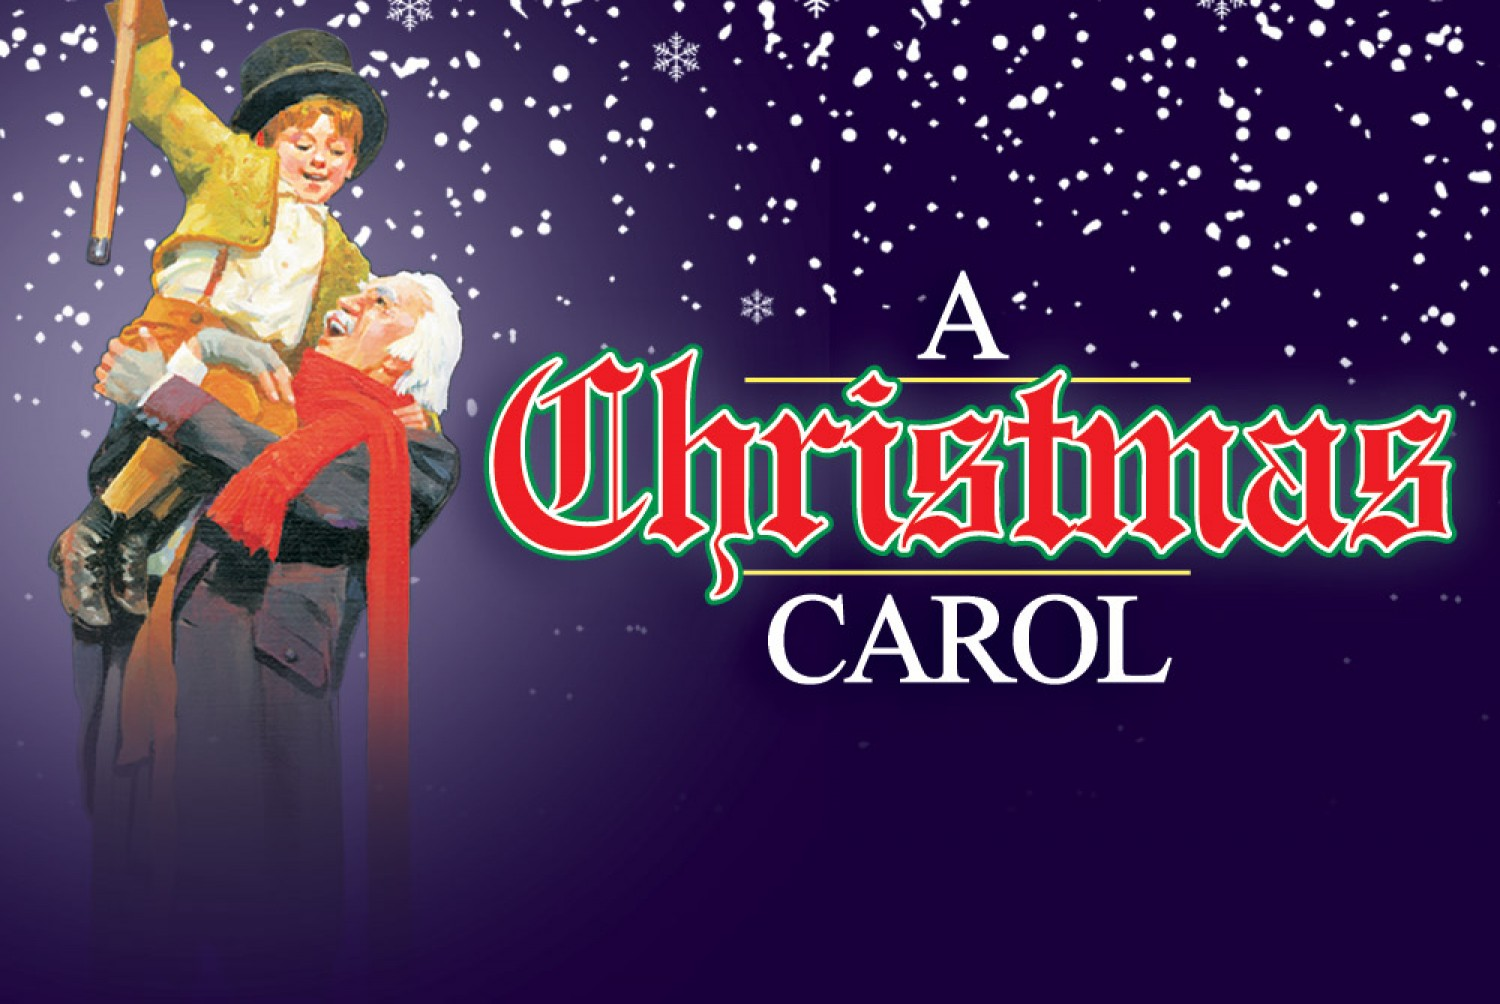 Christmas Carol.A Christmas Carol December 5 Sold Out Grades 1 12 120